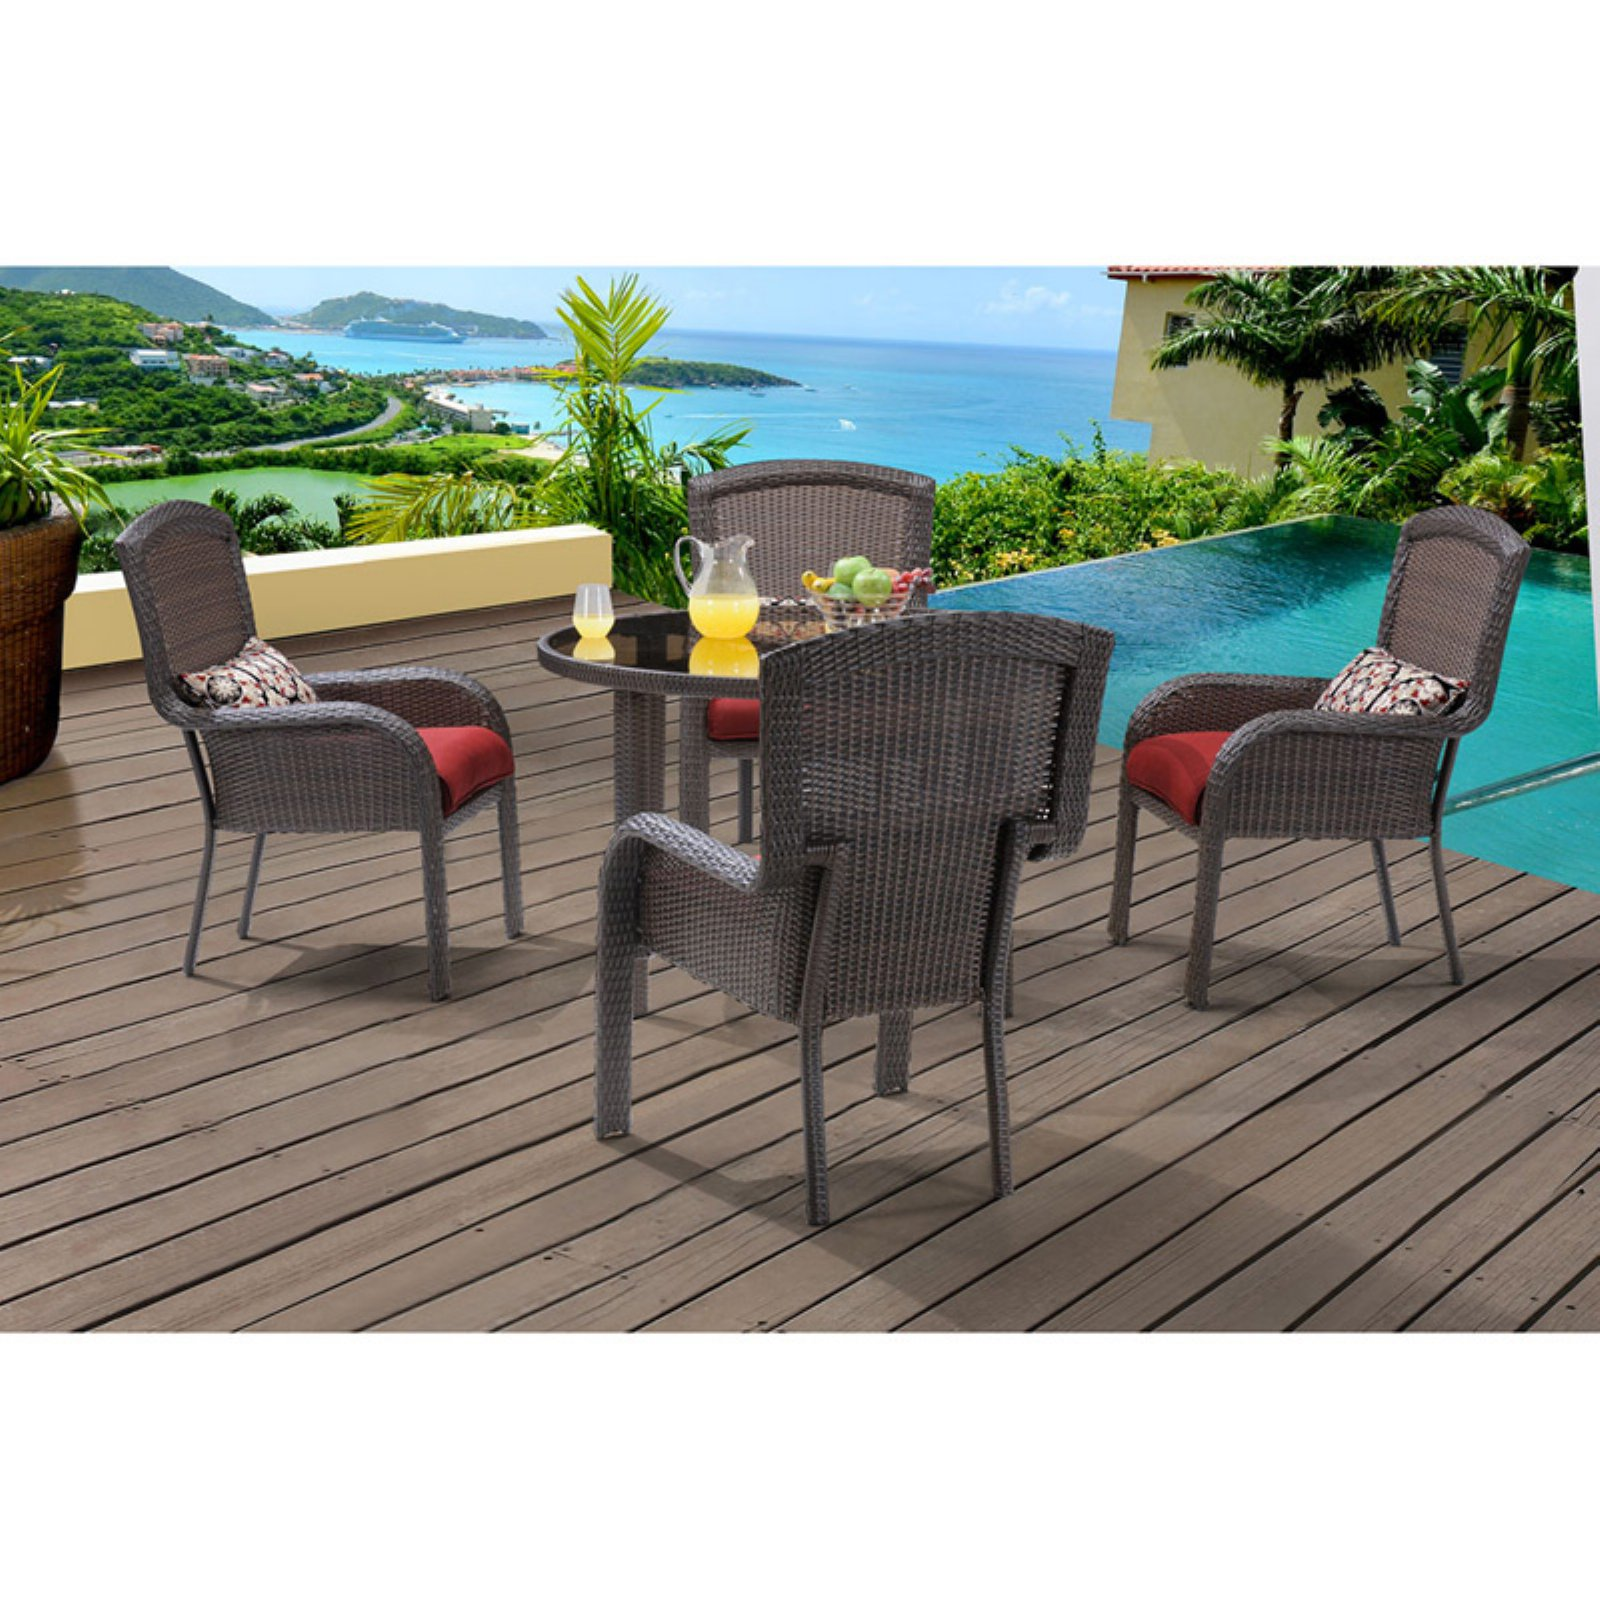 "Hanover Outdoor Strathmere 5-Piece Dining Set with 48"" Round Table, Crimson Red/Aged Barrel"